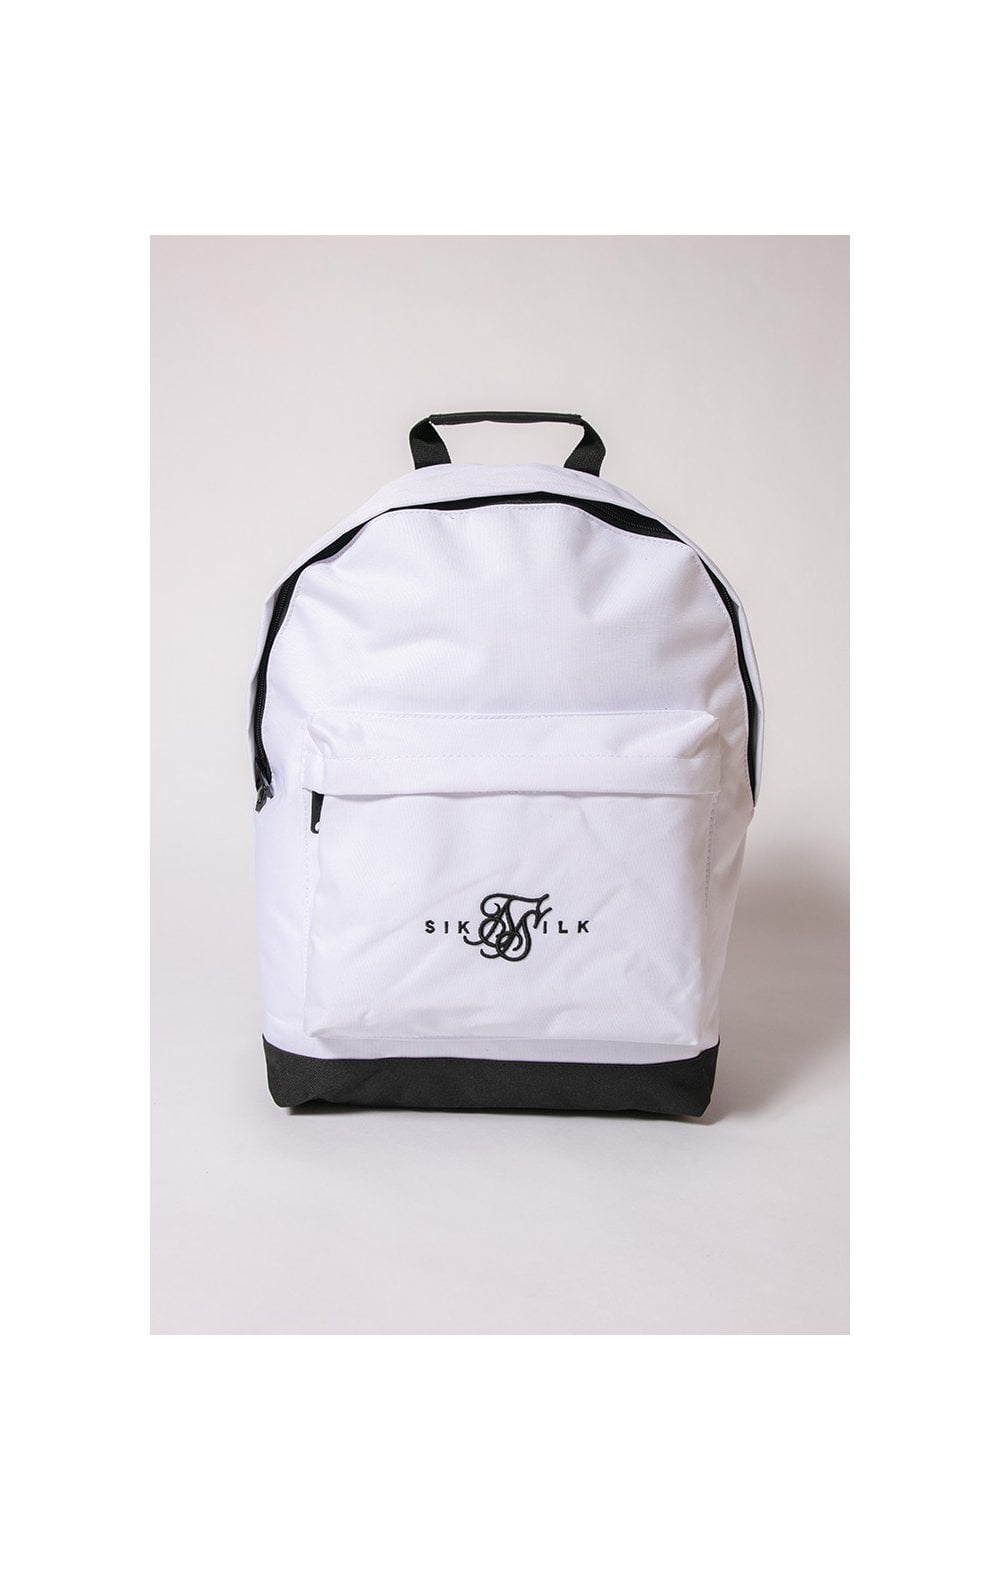 SikSilk Dual Logo Backpack – White & Black